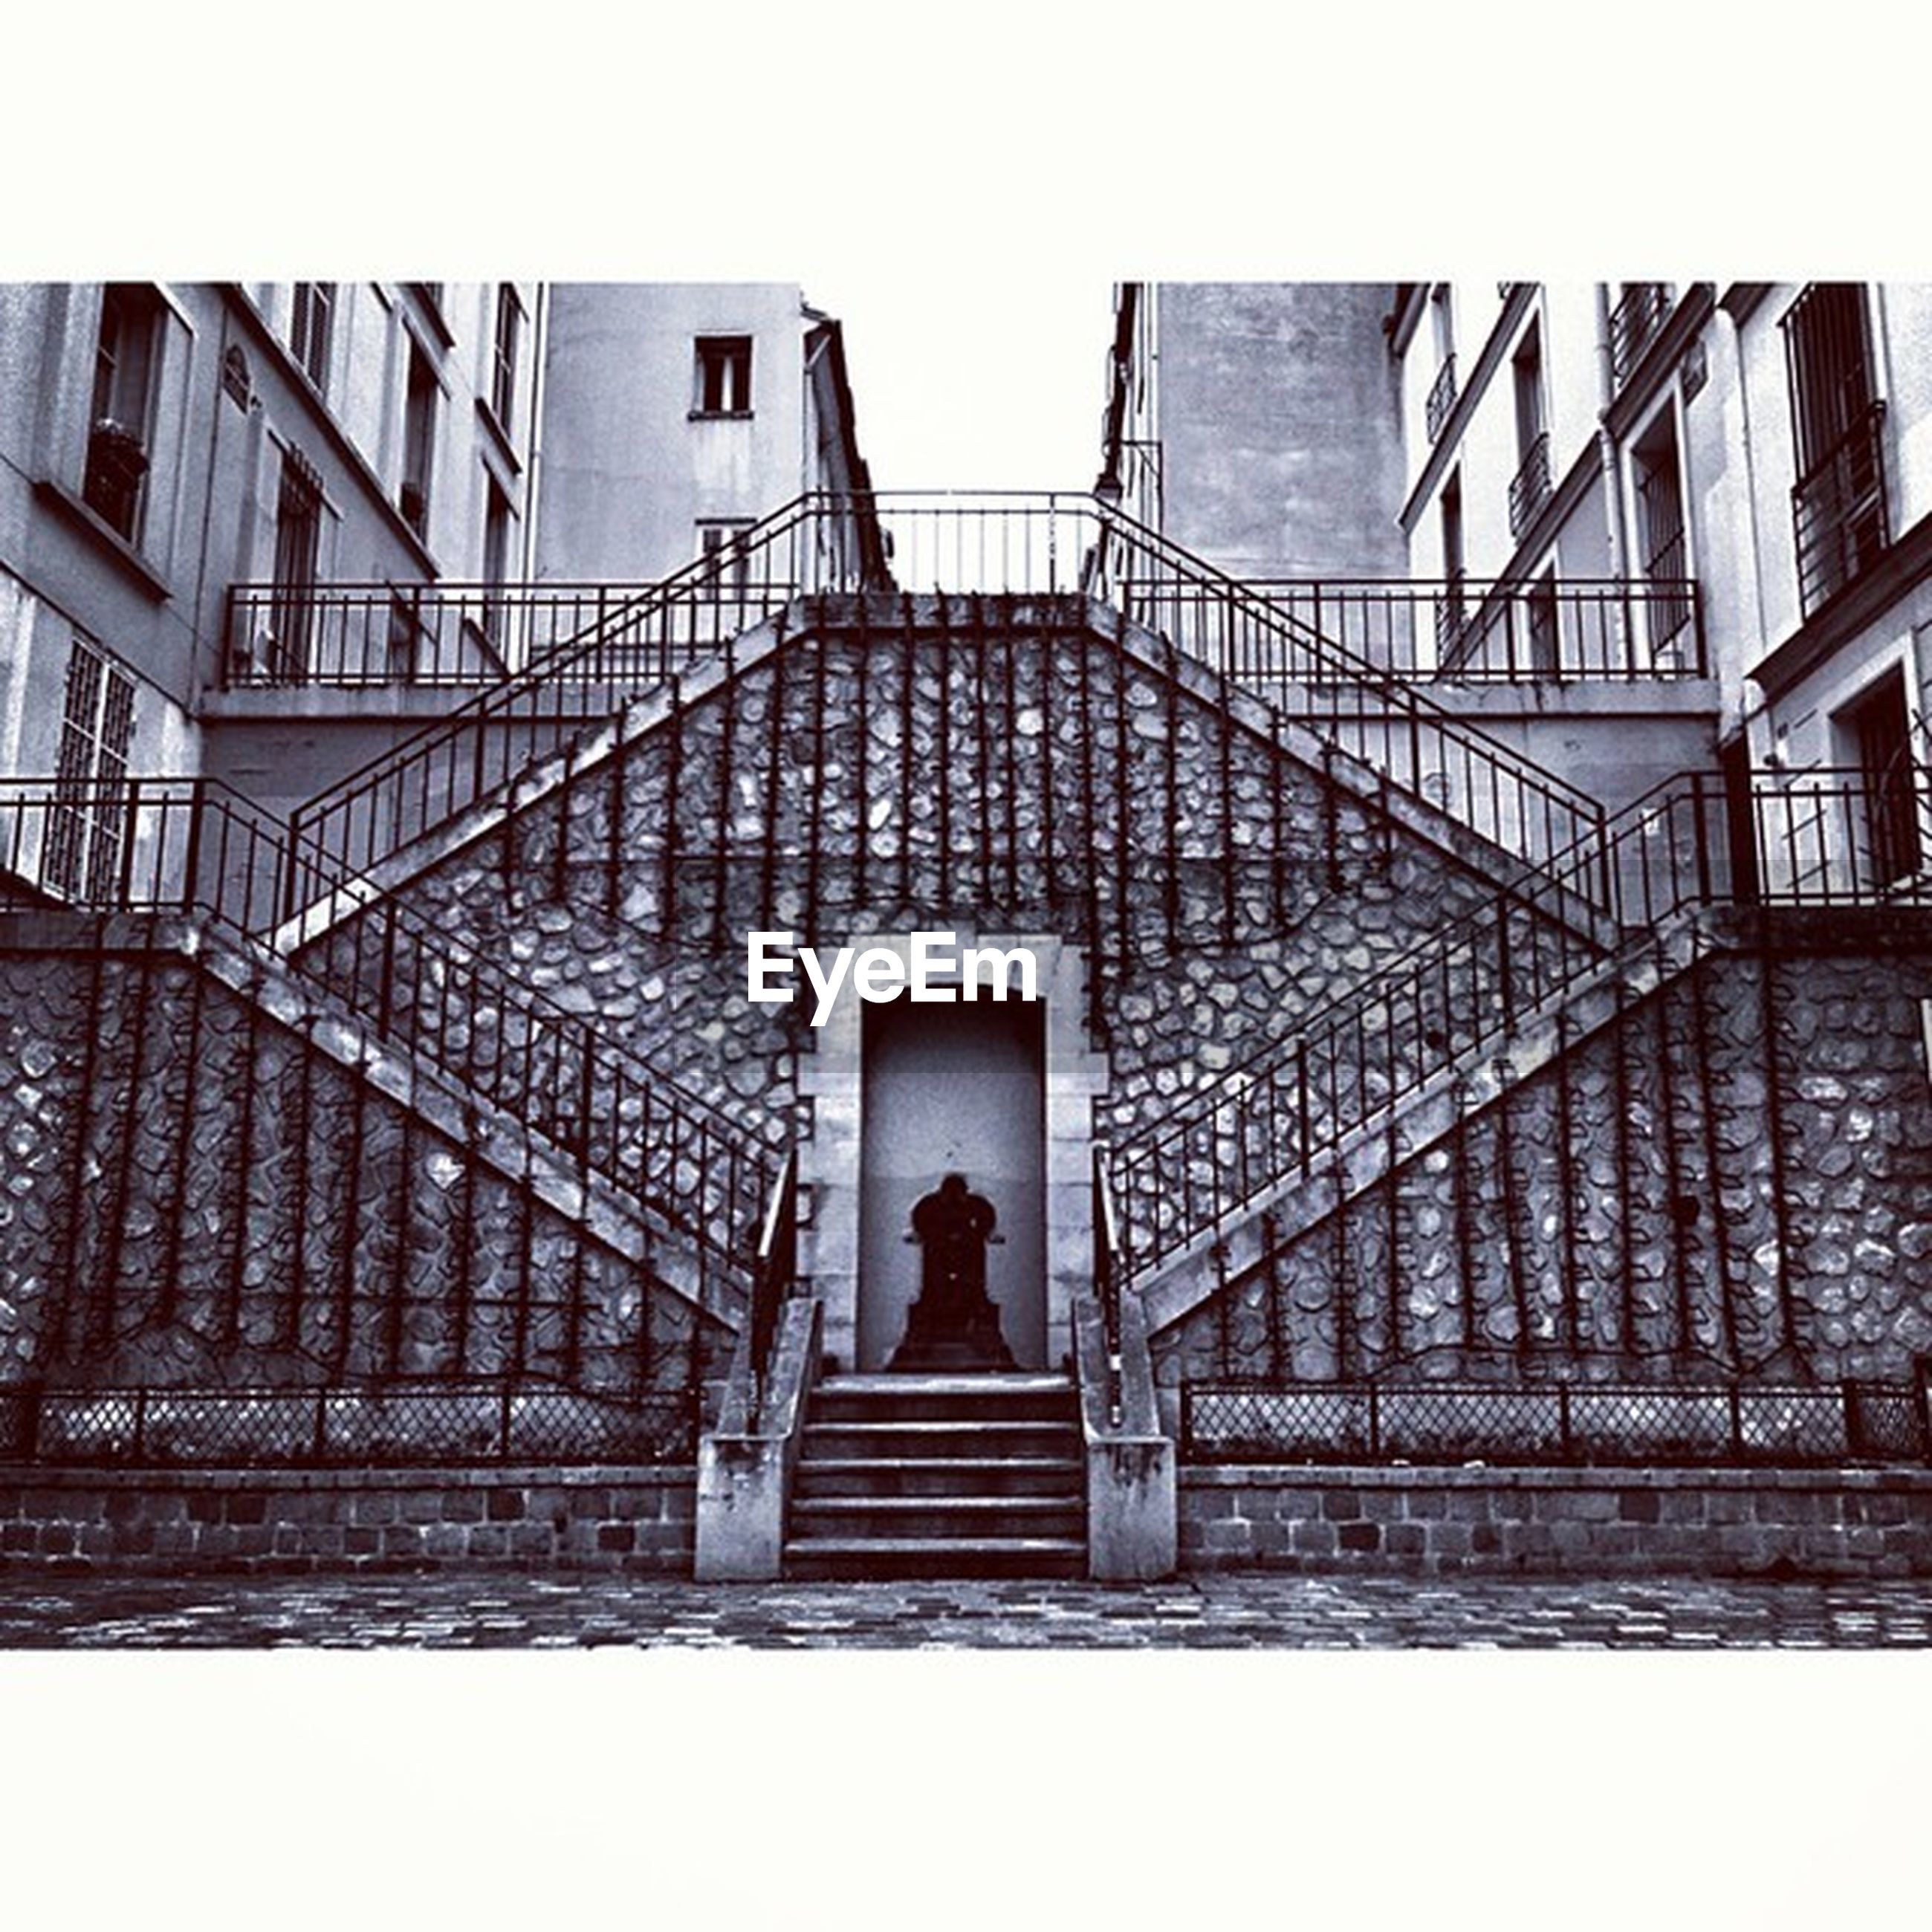 architecture, built structure, steps, steps and staircases, low angle view, staircase, building exterior, railing, stairs, building, rear view, indoors, full length, arch, day, standing, men, walking